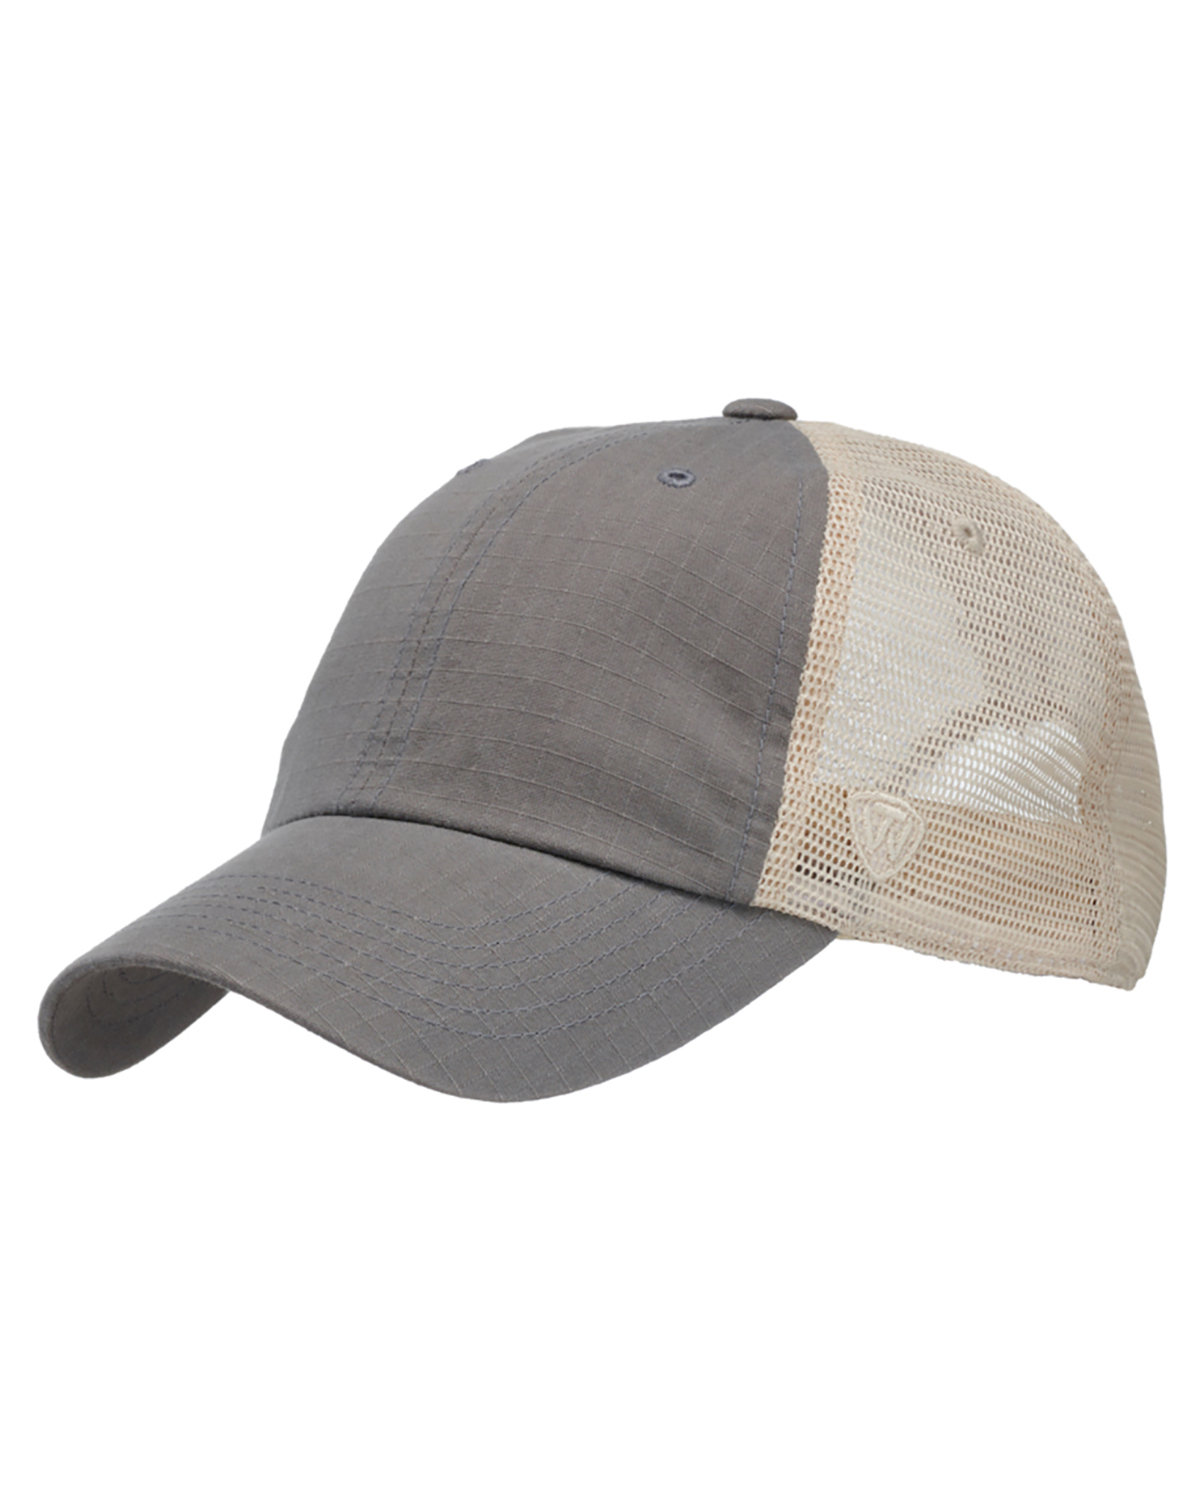 Top Of The World Riptide Ripstop Trucker Hat GREY